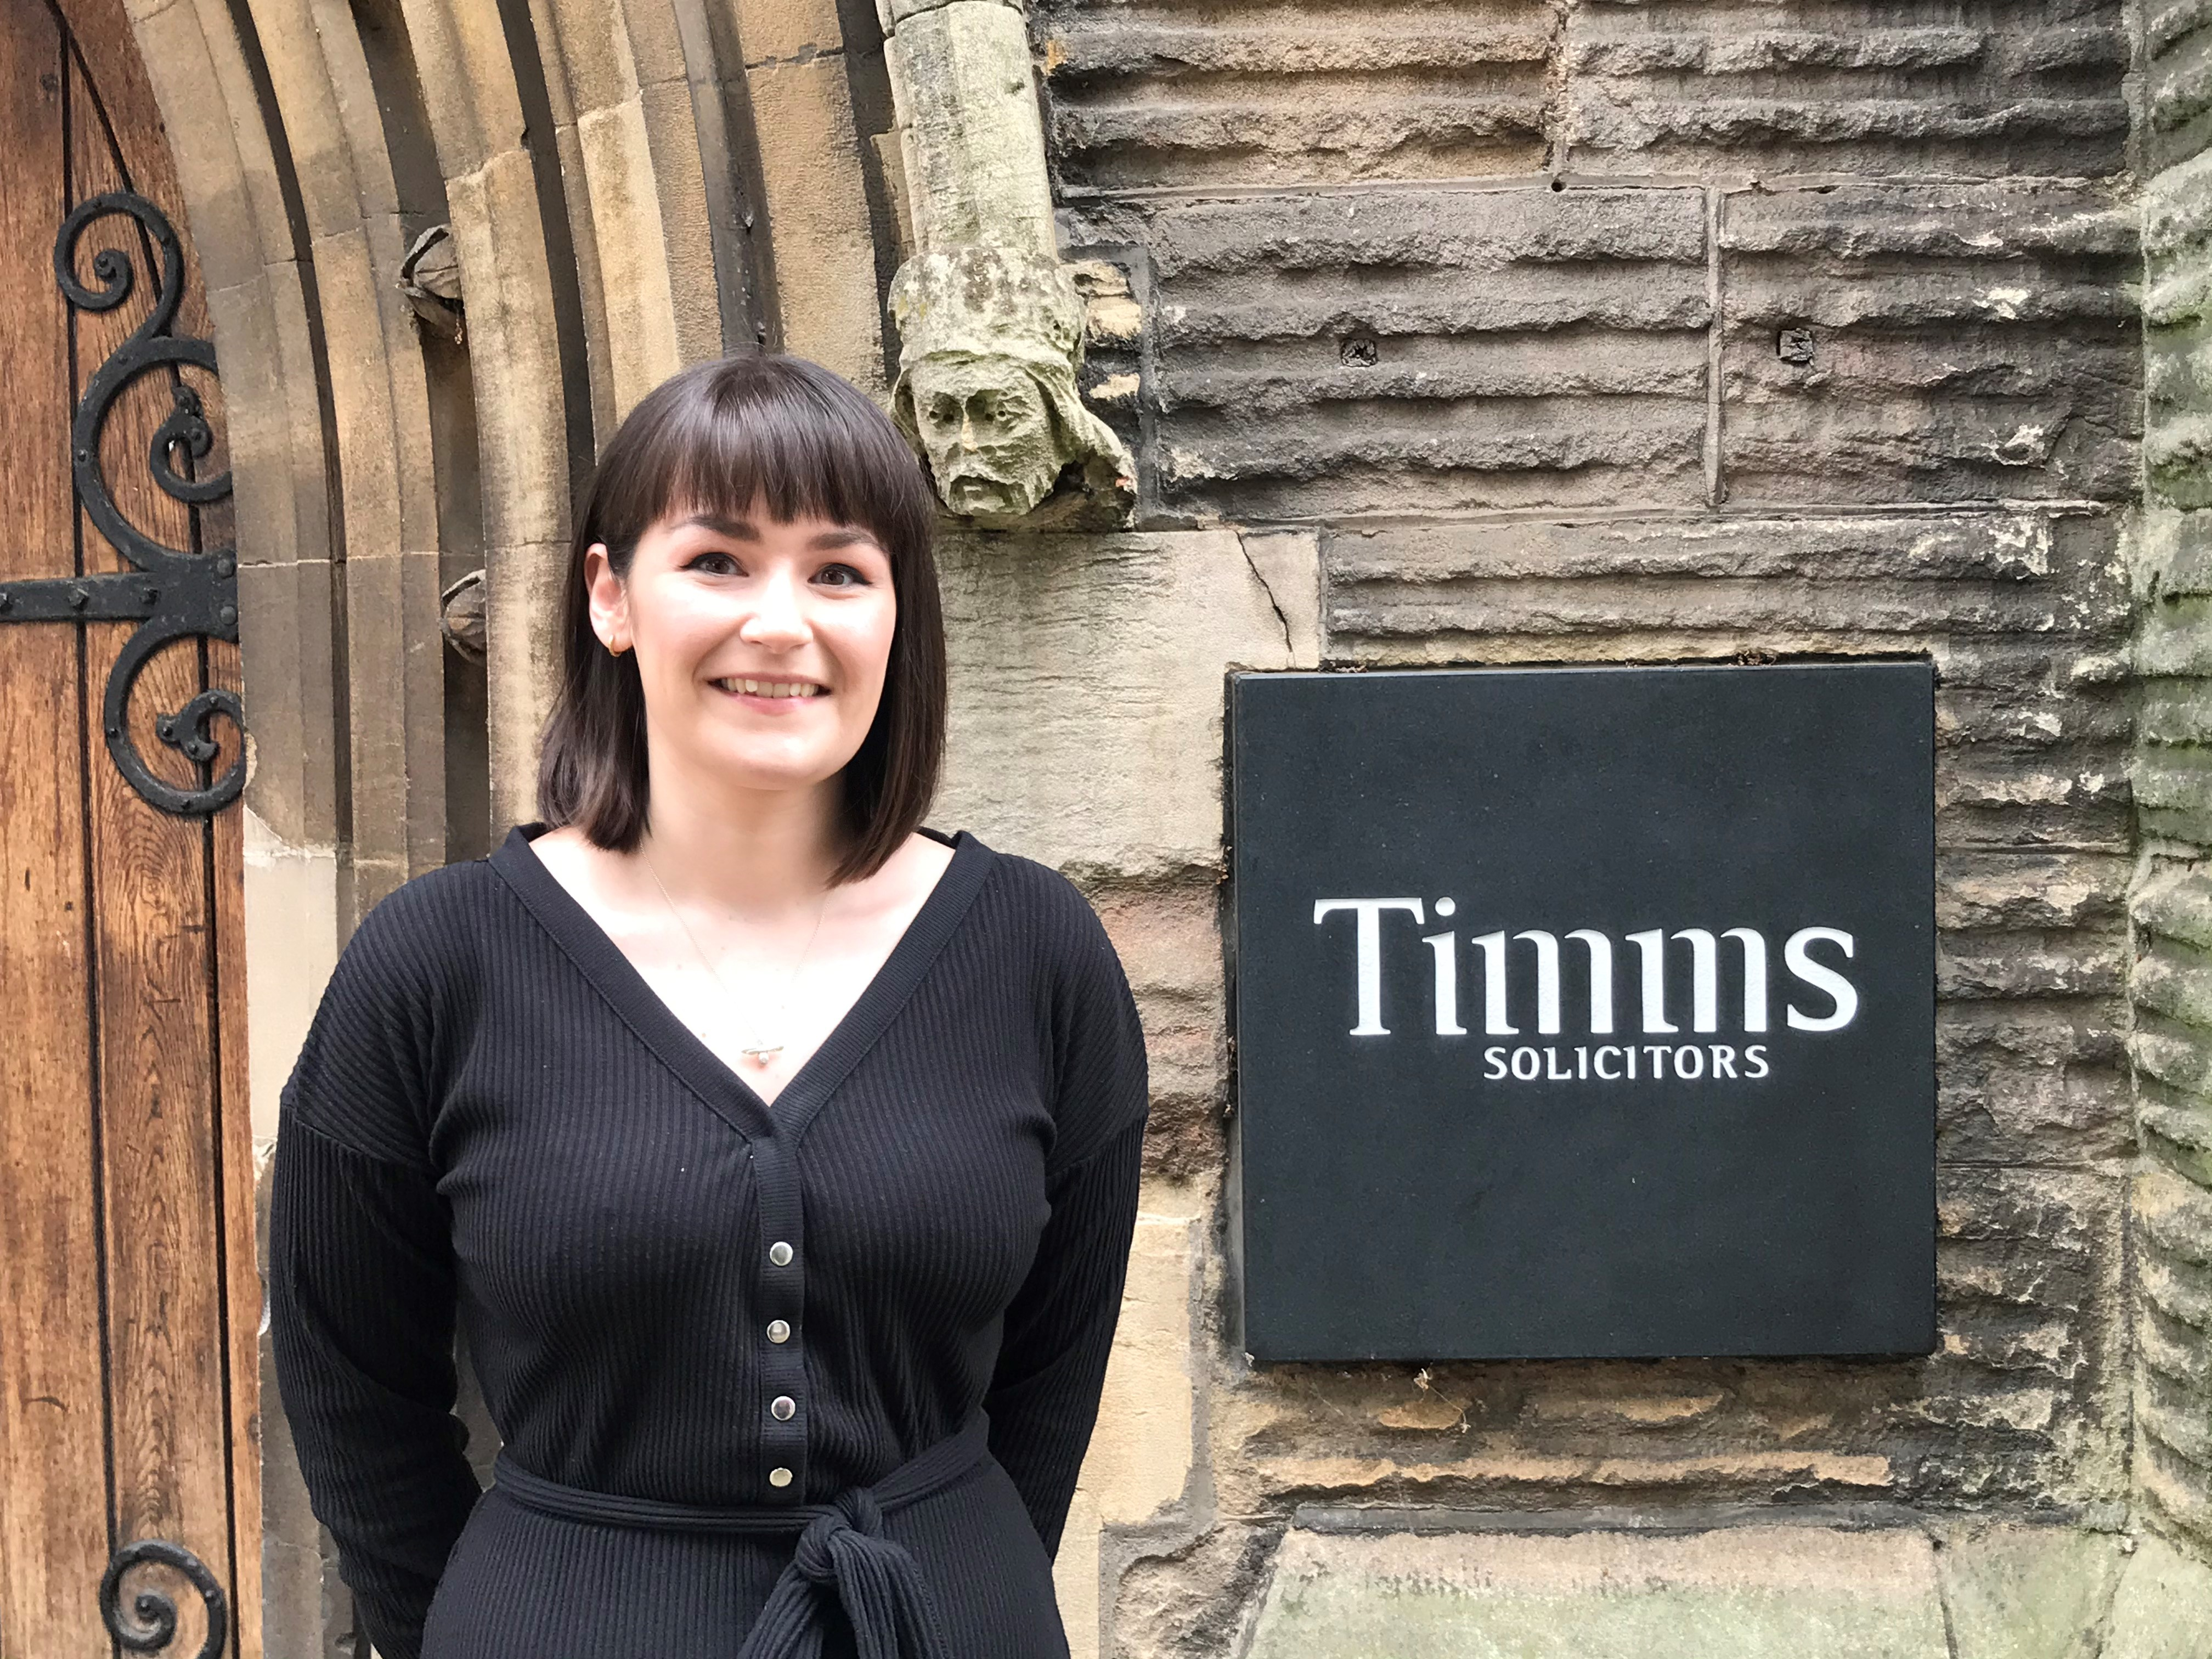 Jessica Proves Her Mettle At Timms Solicitors